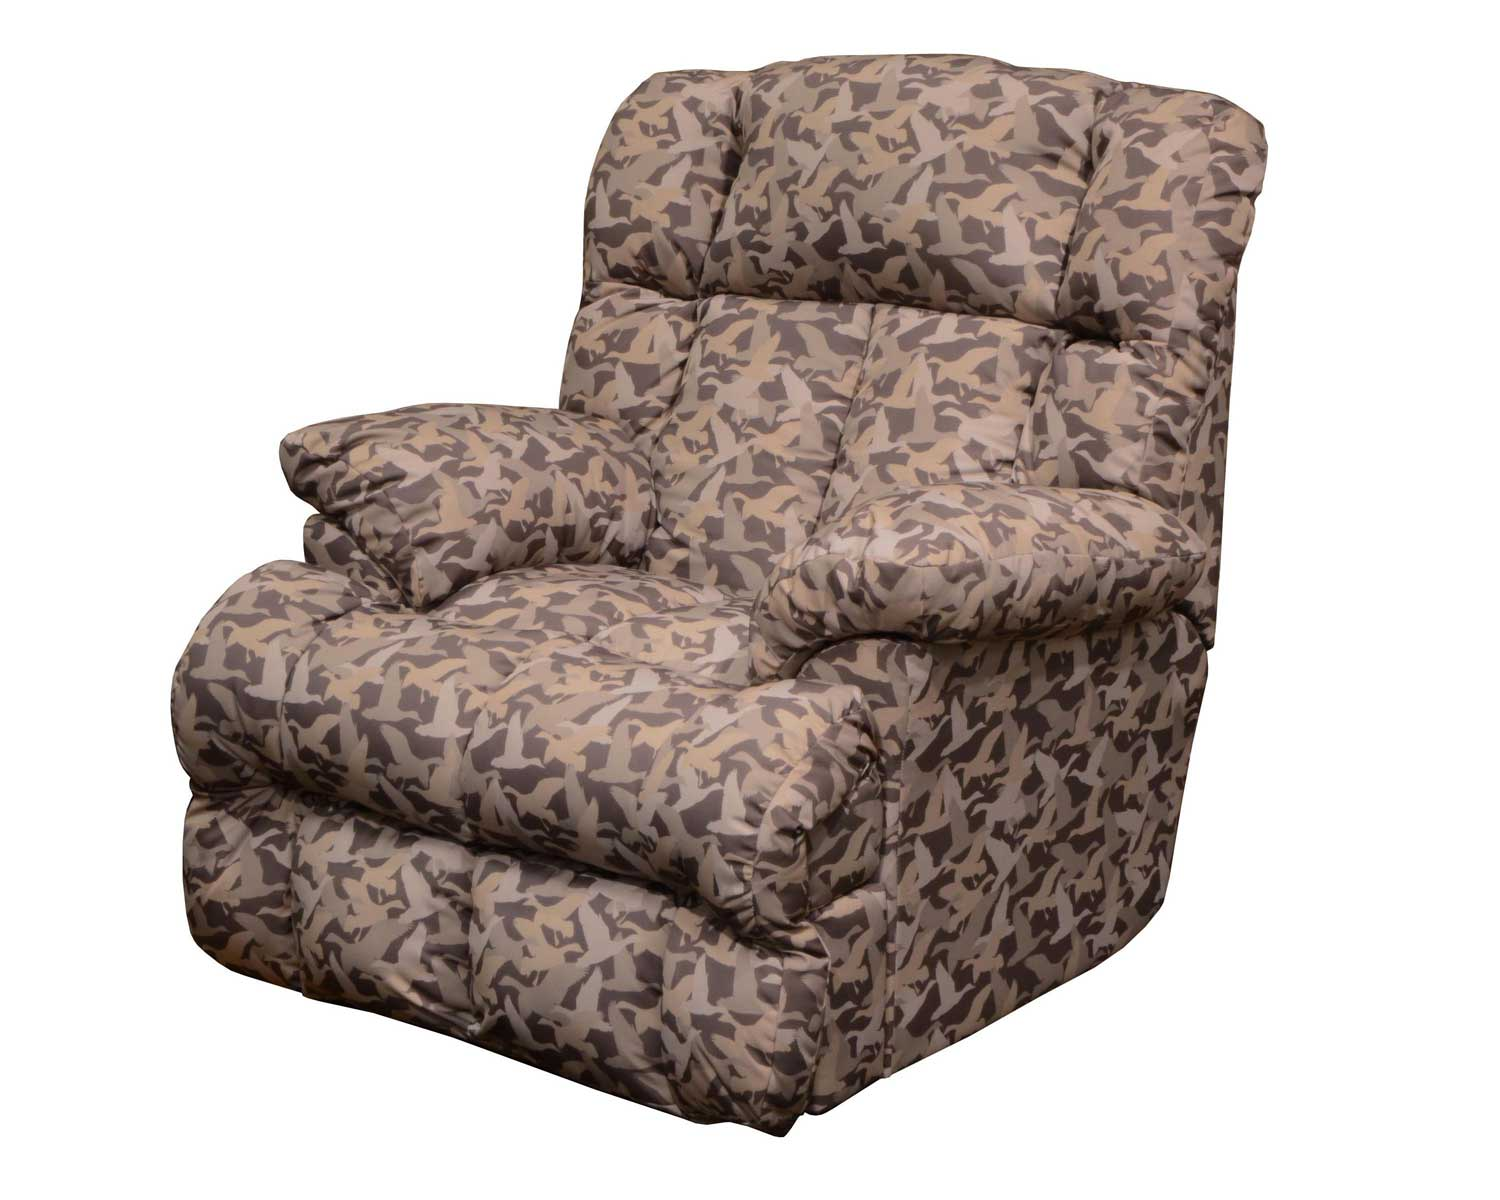 catnapper duck dynasty cedar creek lay flat recliner duck camo - Catnapper Recliner